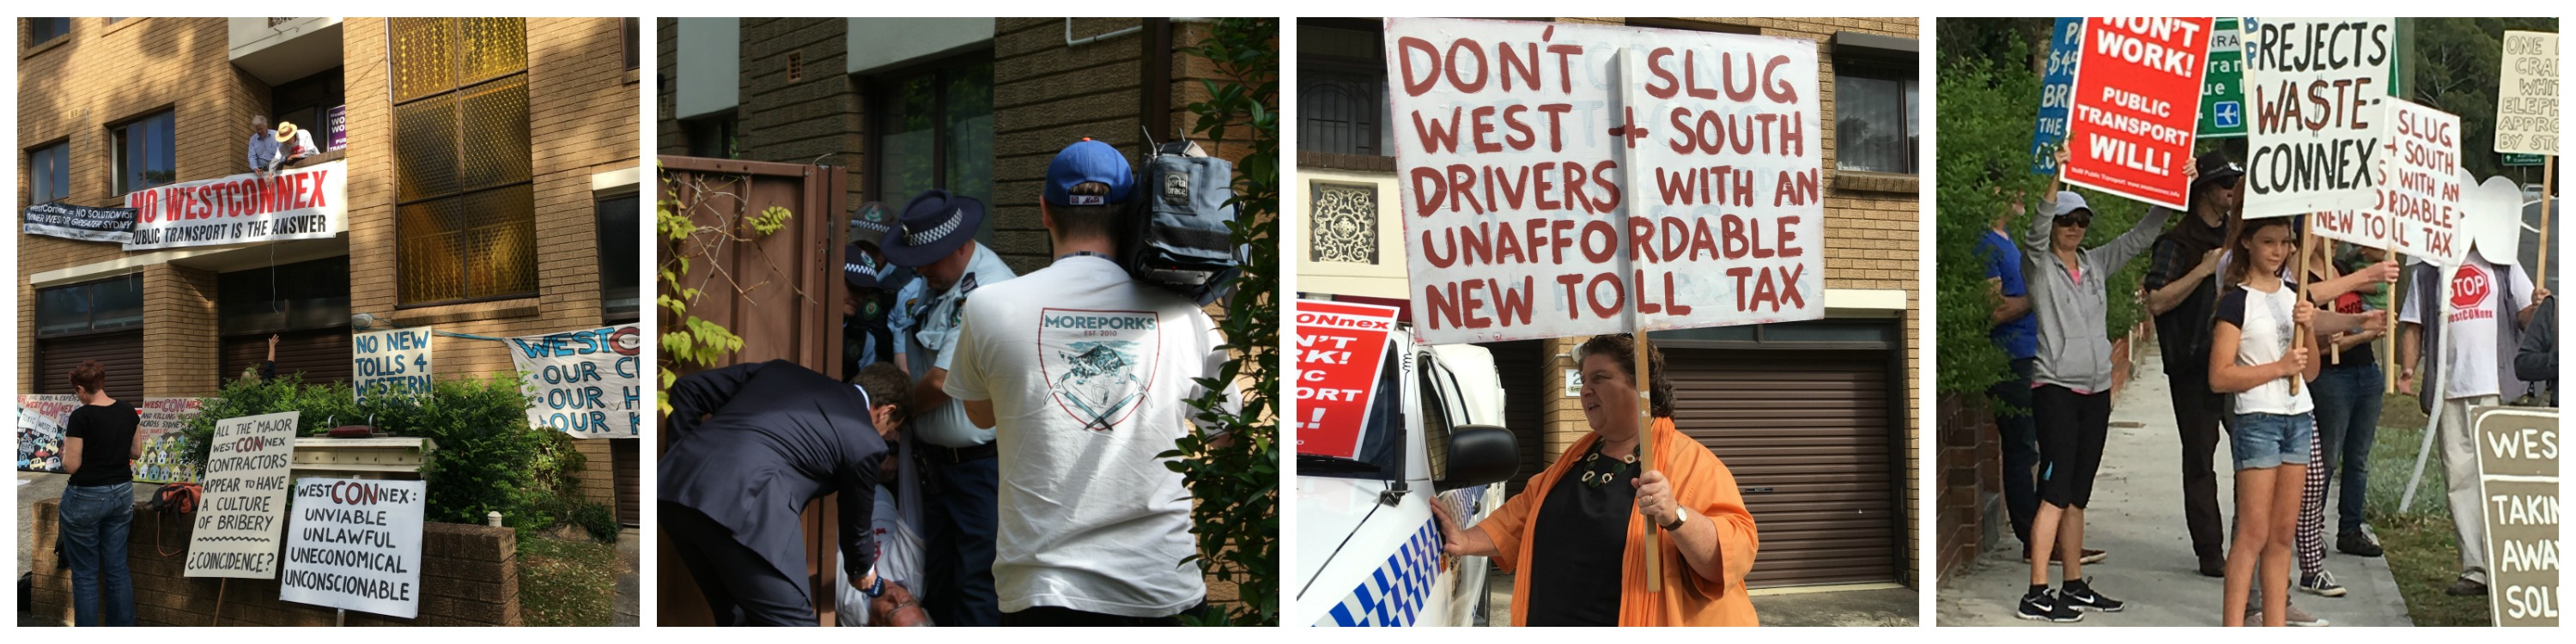 Haberfield flat occupation